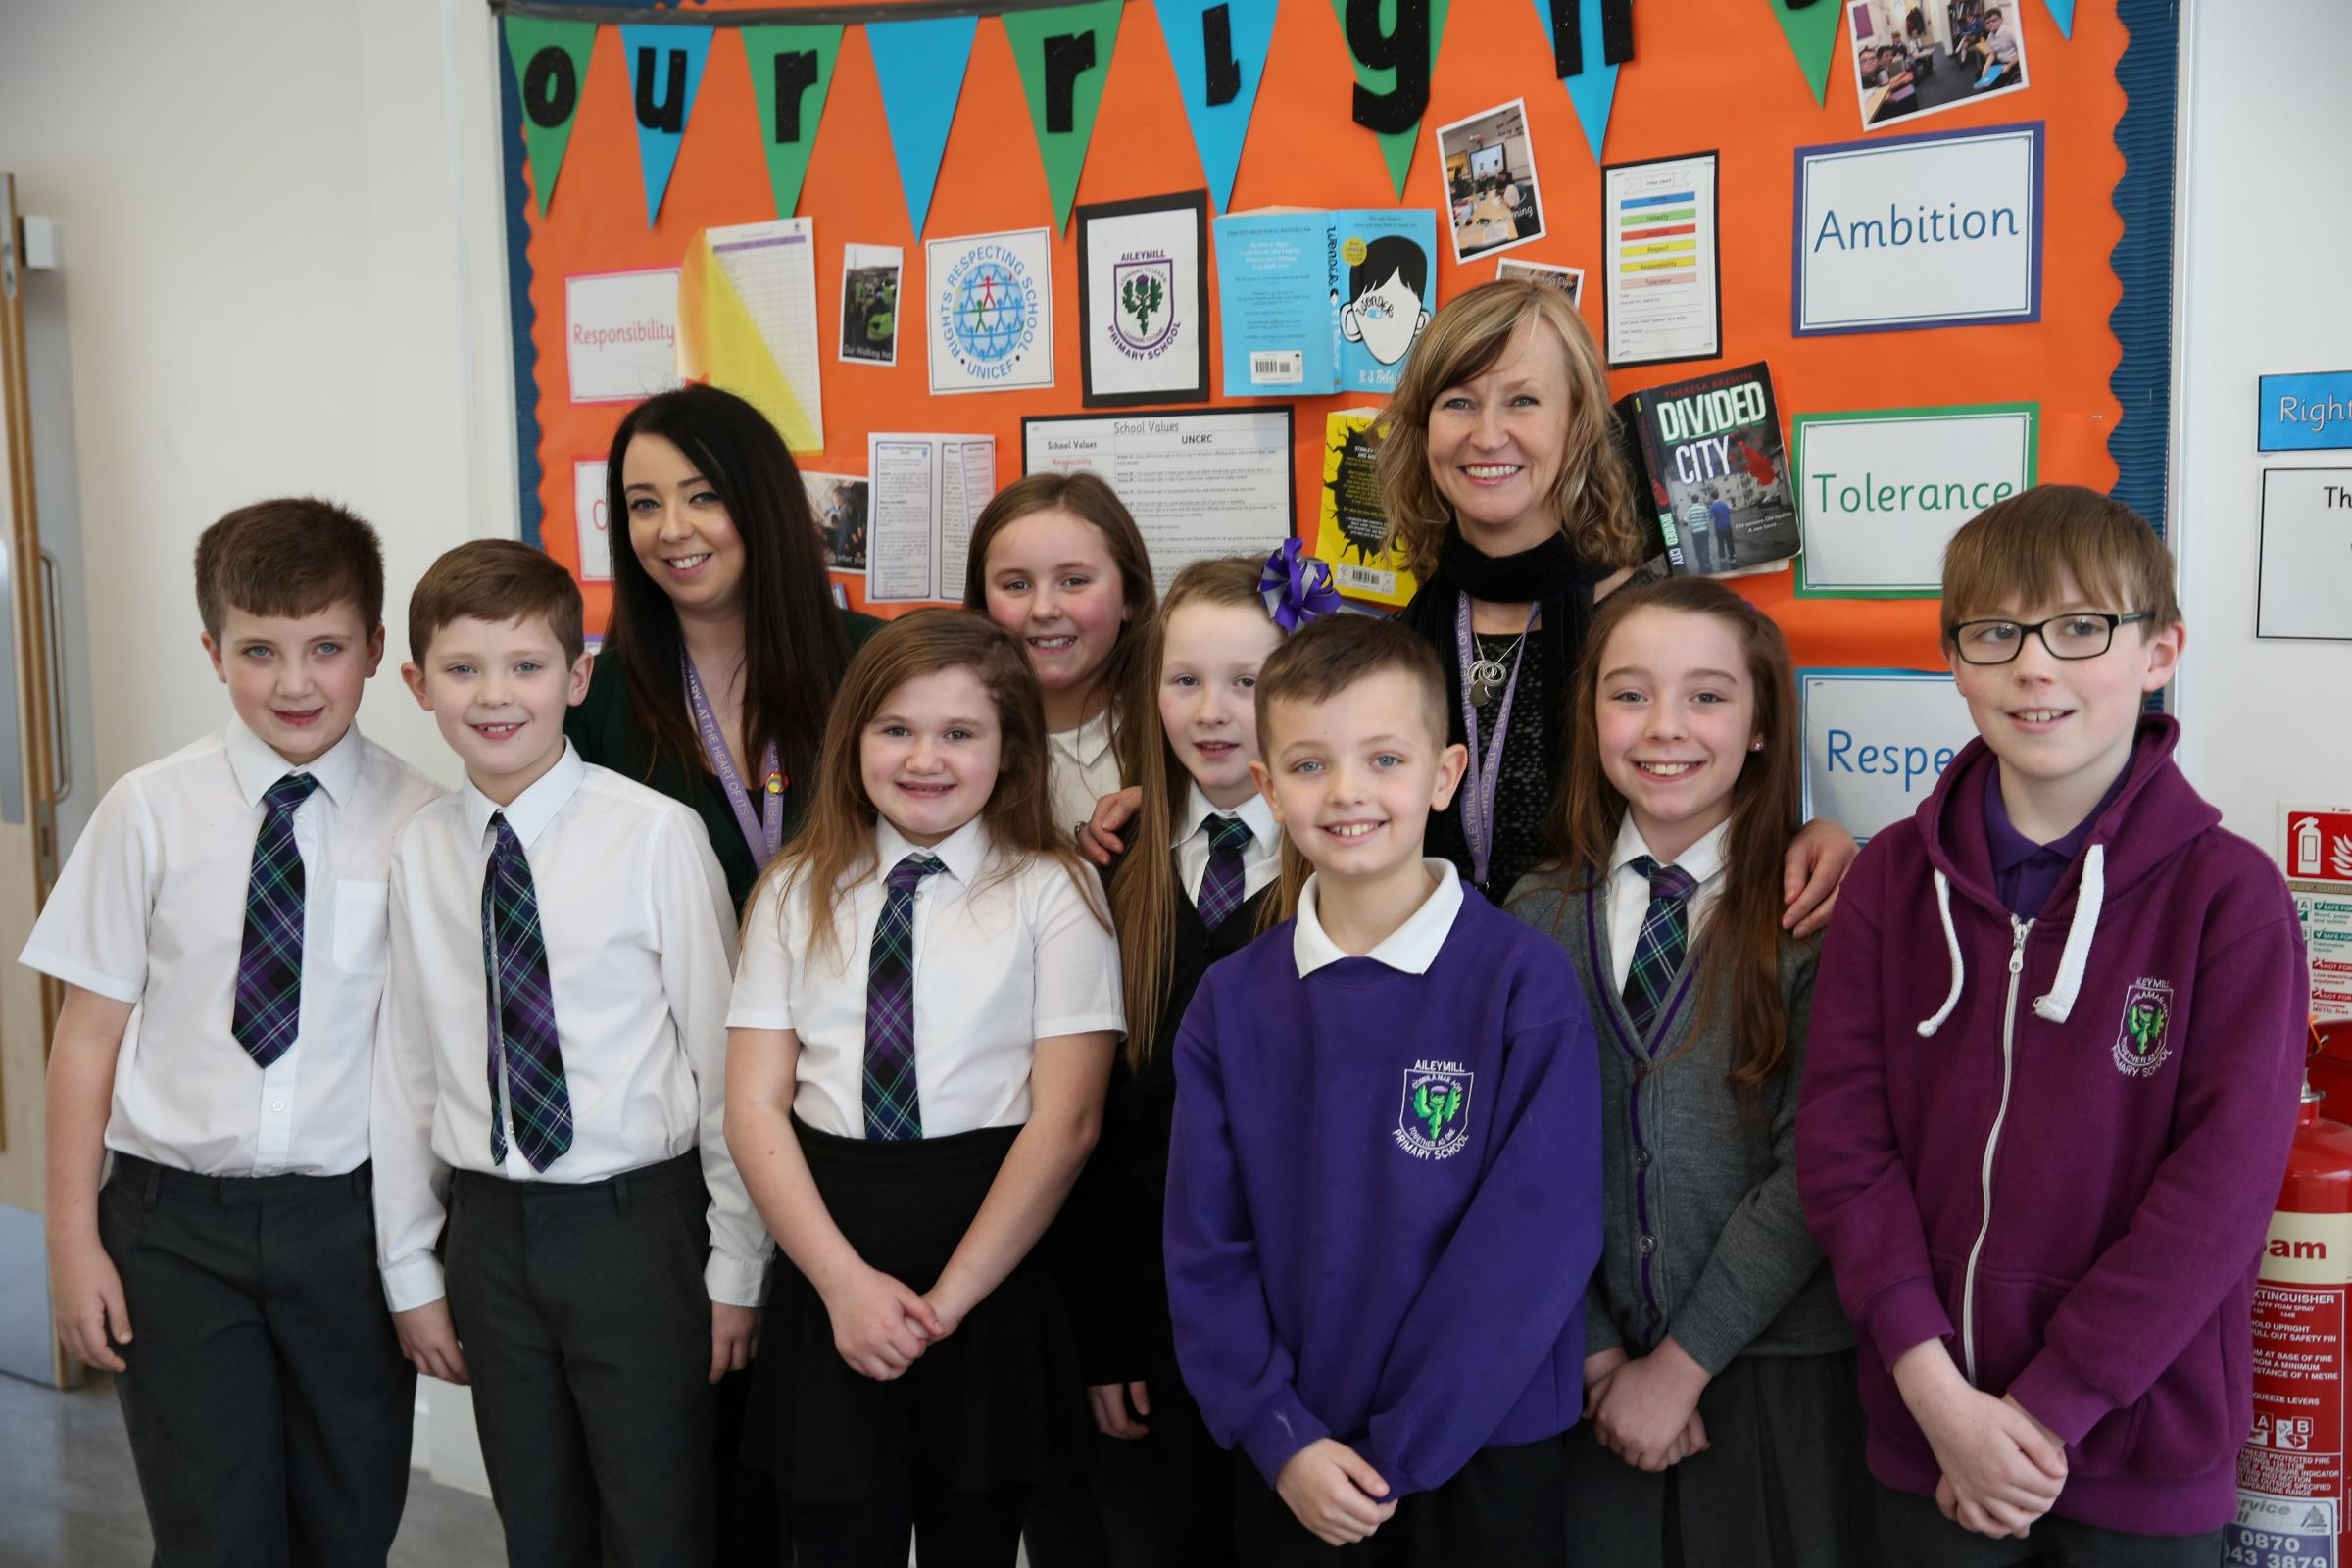 Aileymill pupils' show of respect